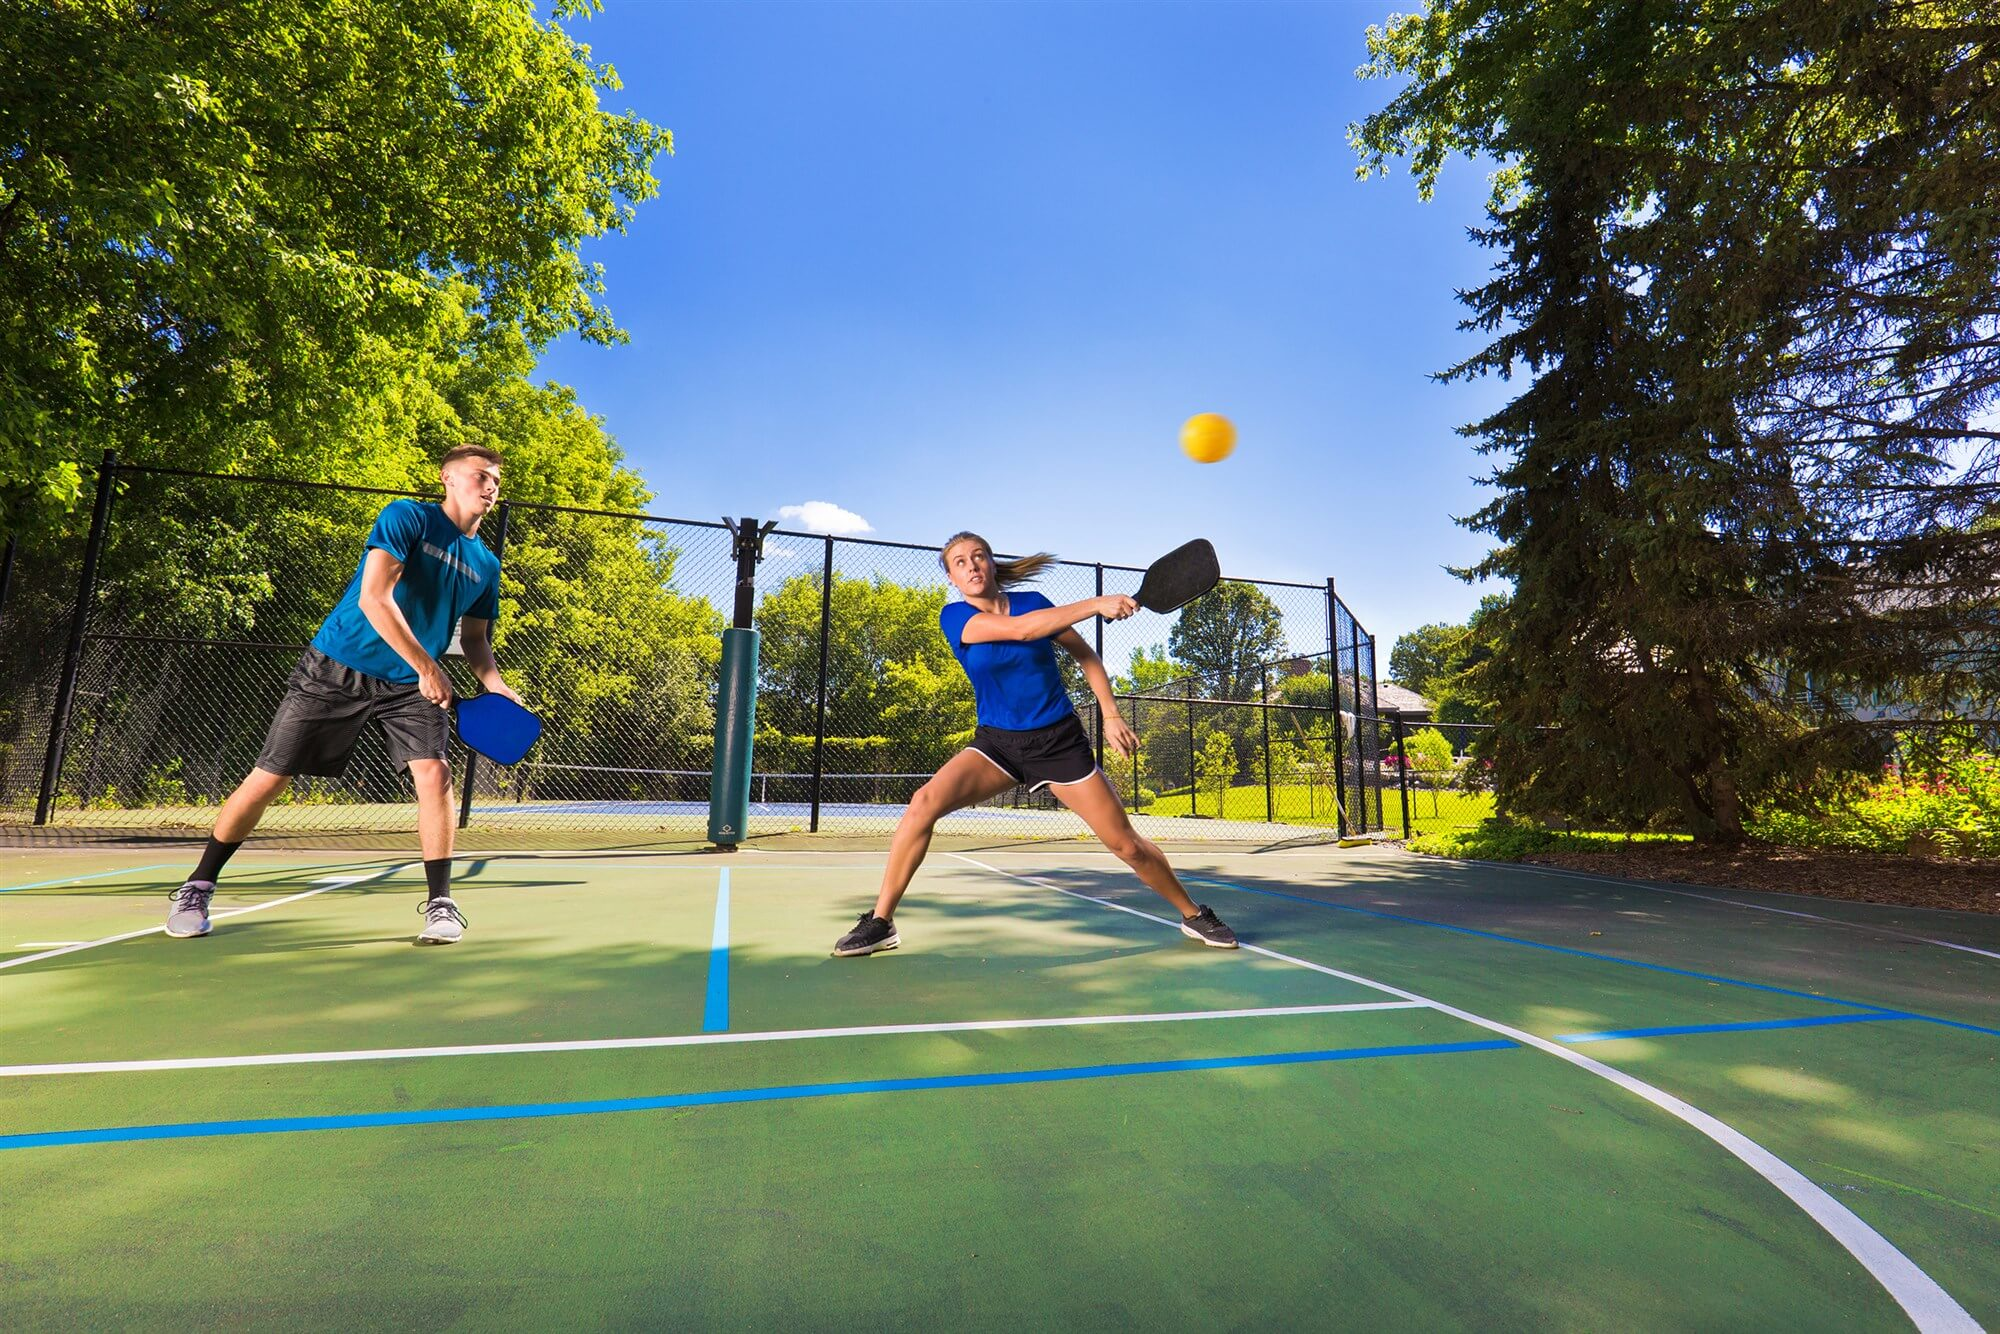 Is pickleball similar to paddle tennis